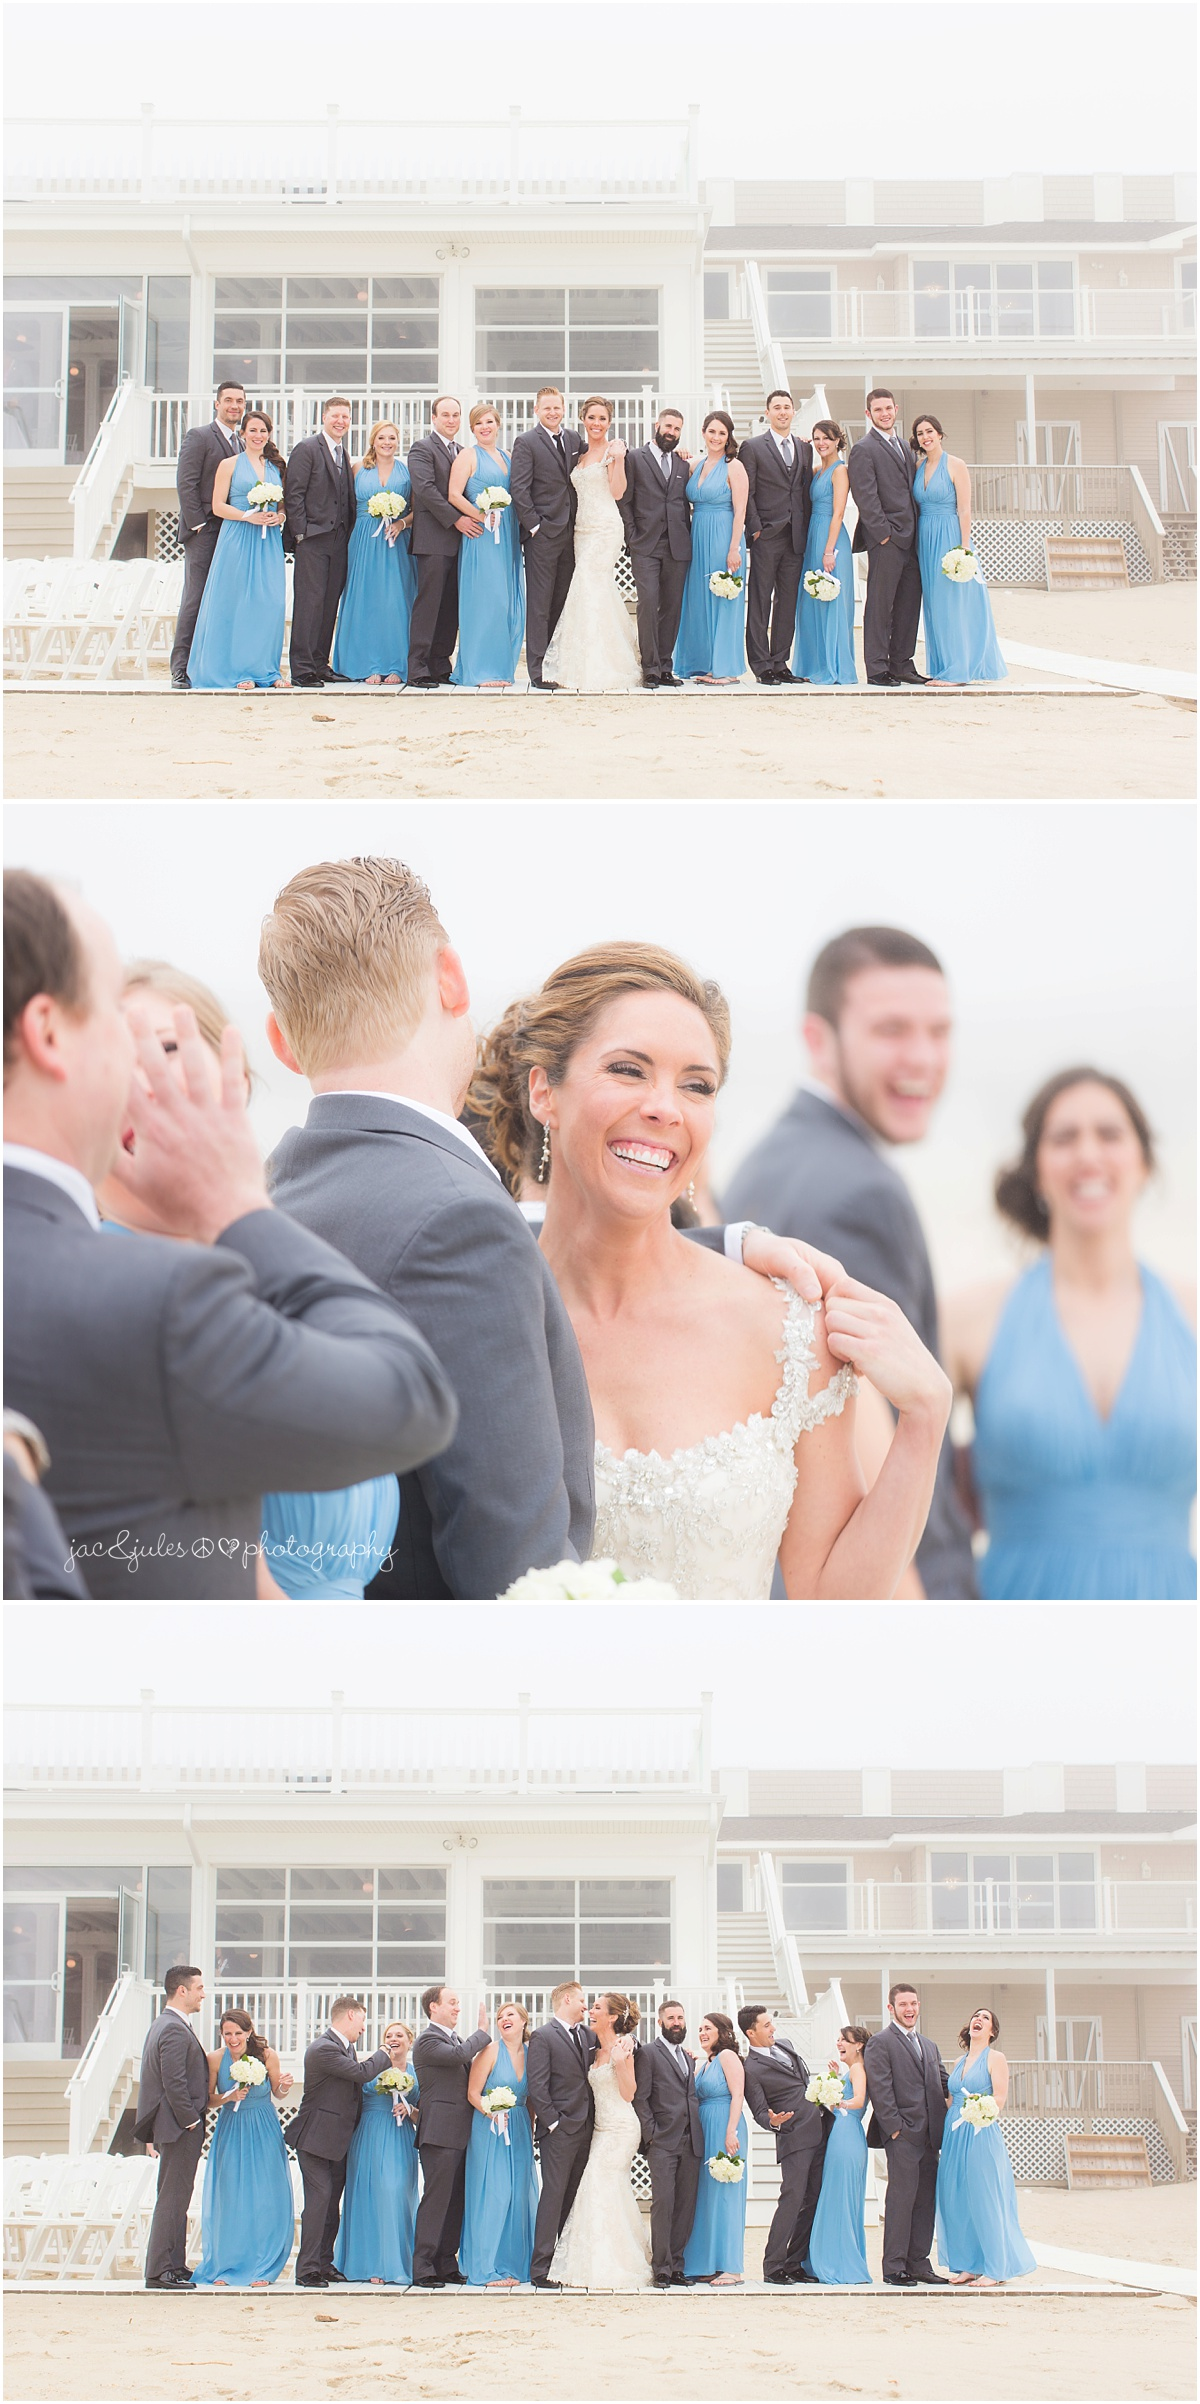 fun bridal party photo on the beach. periwinkle bridesmaid dresses